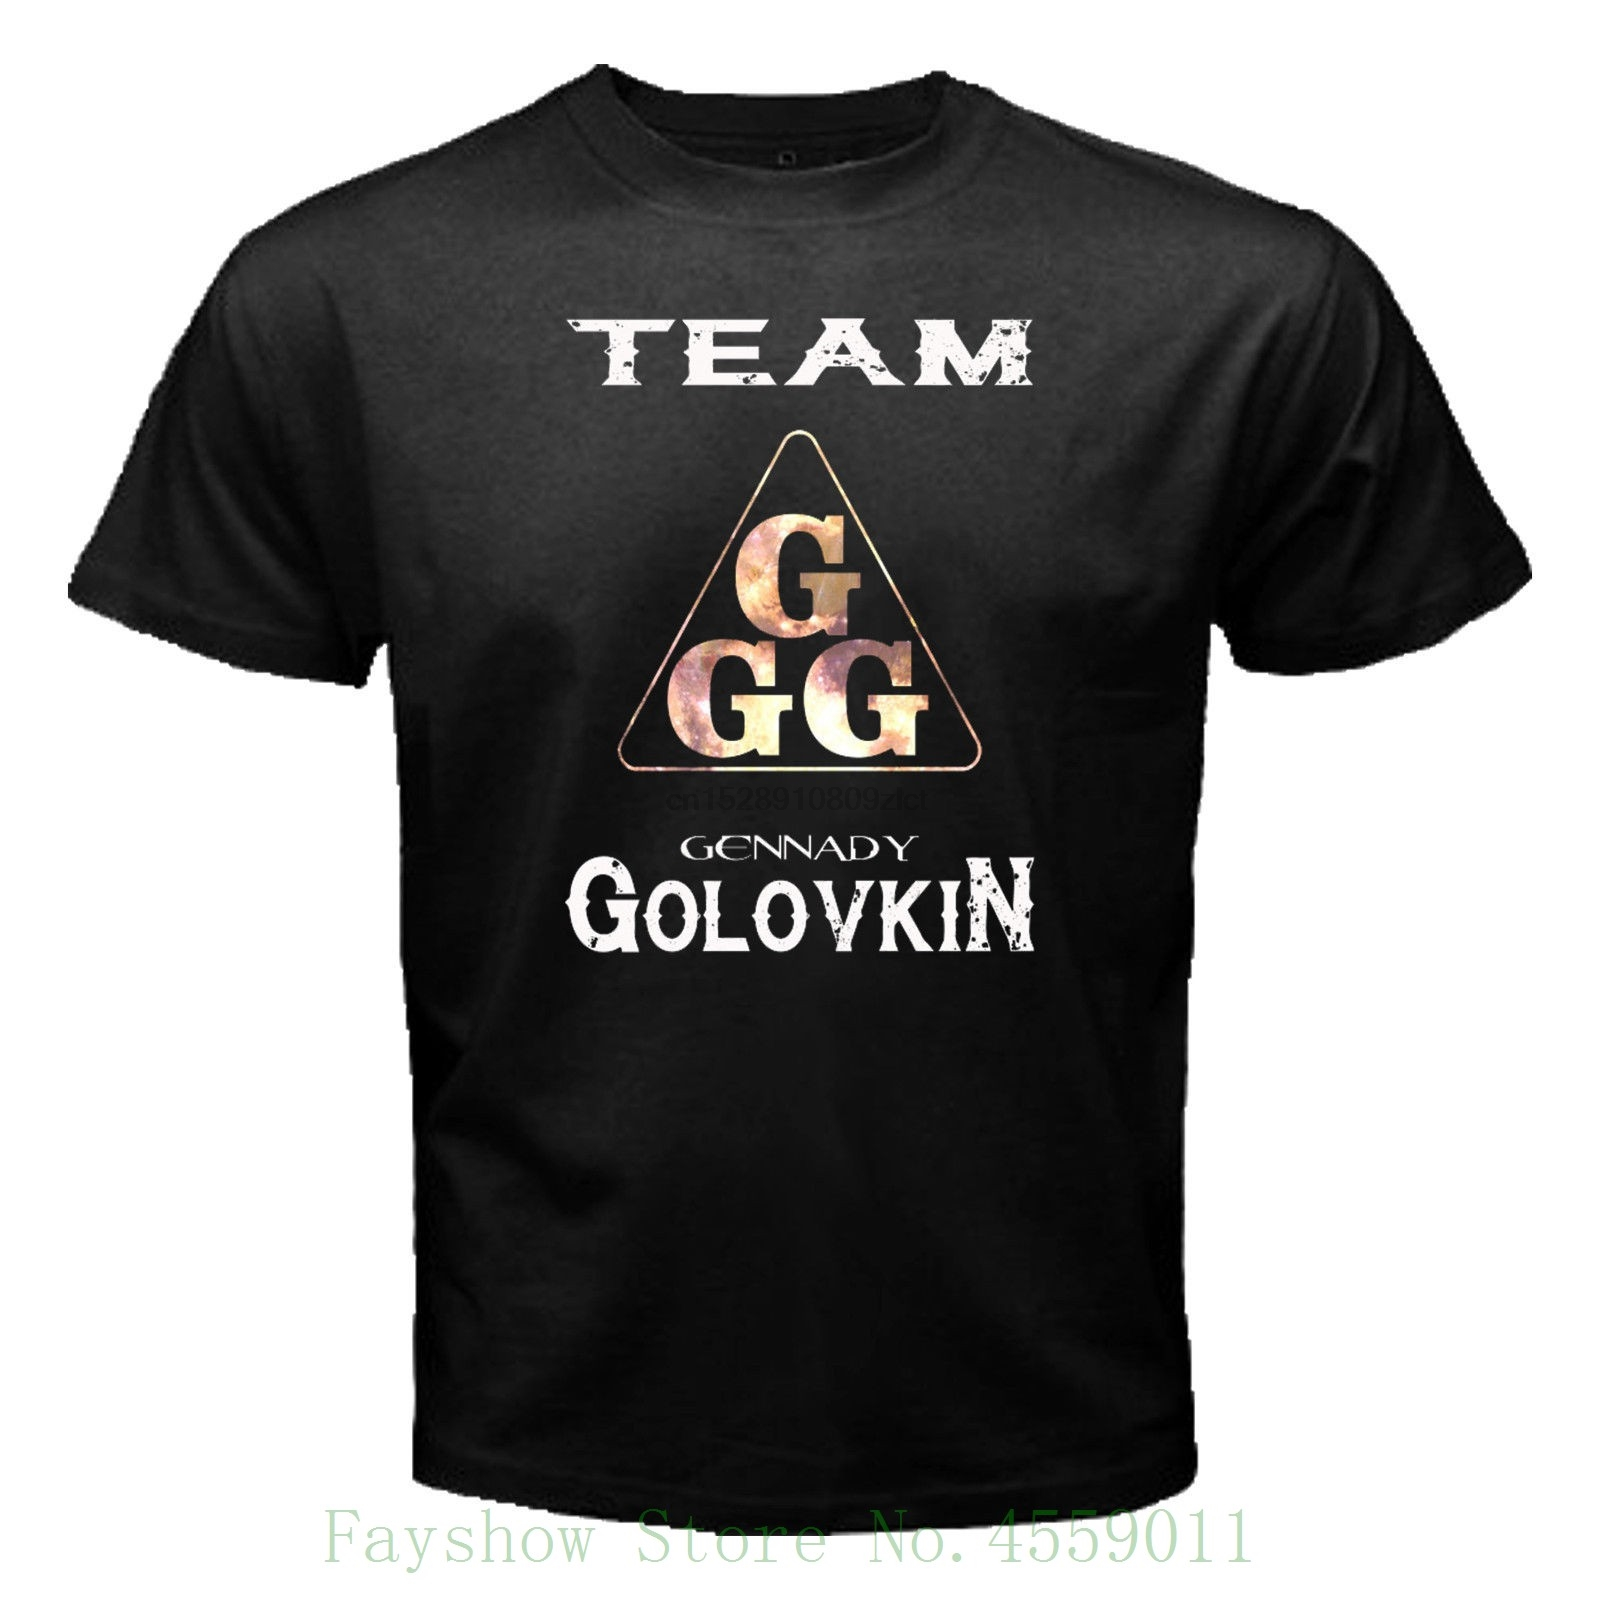 #new Ggg Black T Shirt Boxer Trend Gennady Golovkin Martial Artist Size S To 3xl Simple Short-sleeved Cotton T-shirt